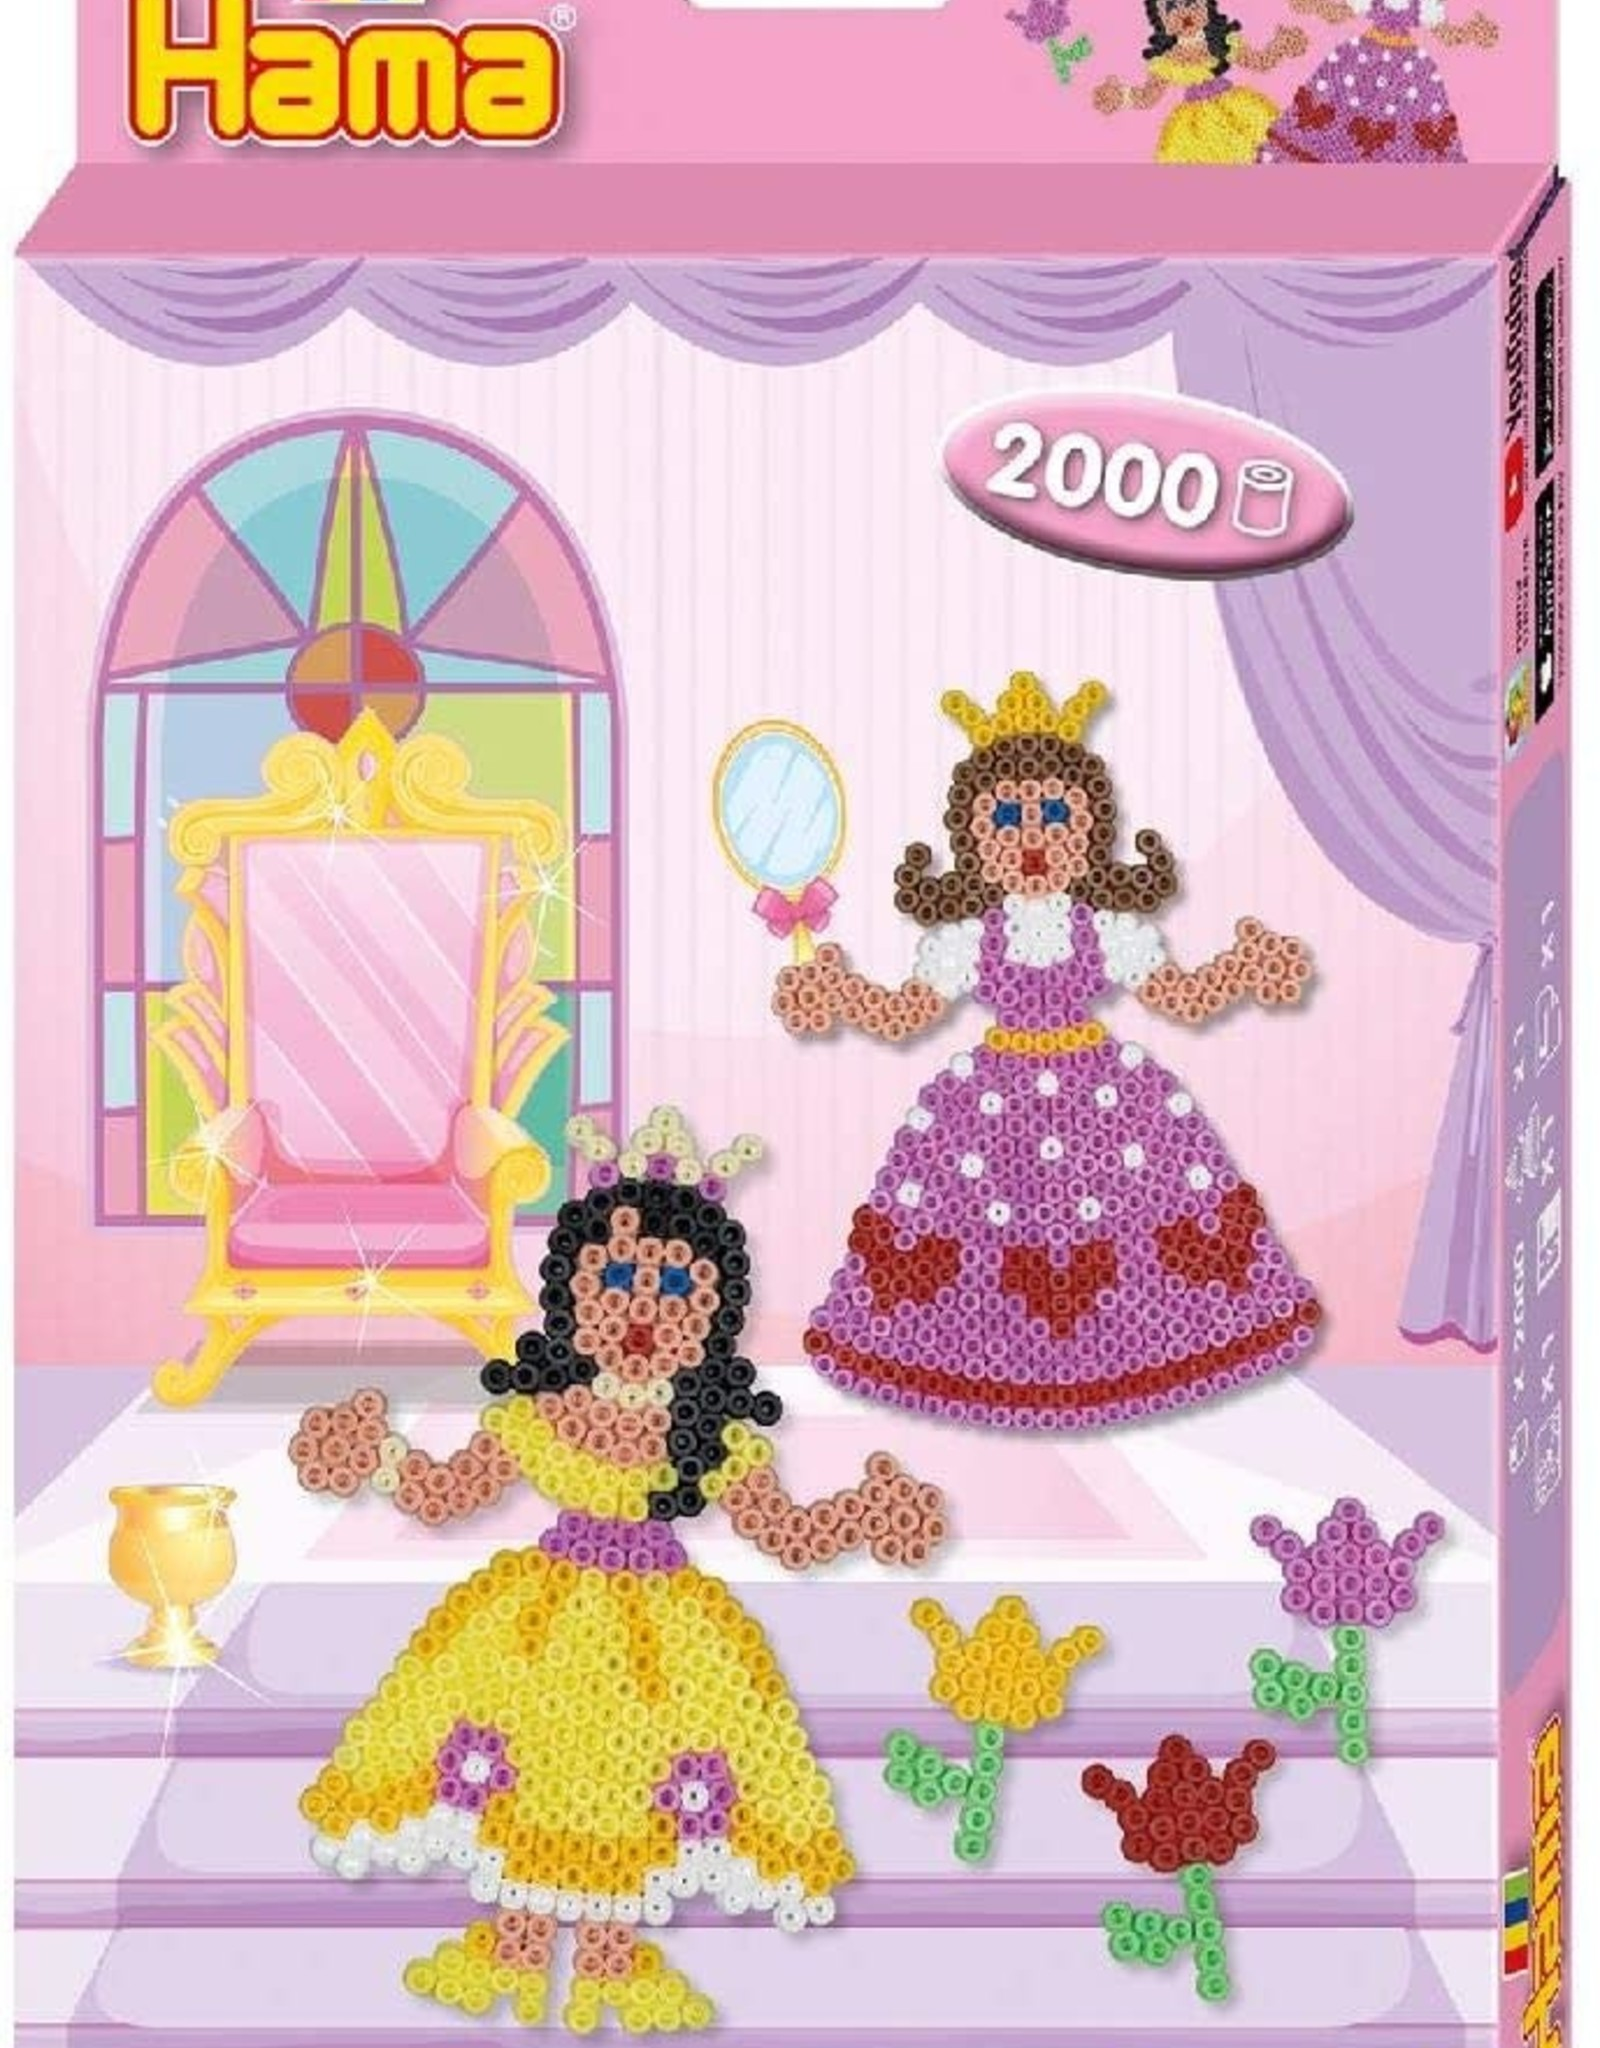 Hama Hama Beads Princess - 2000